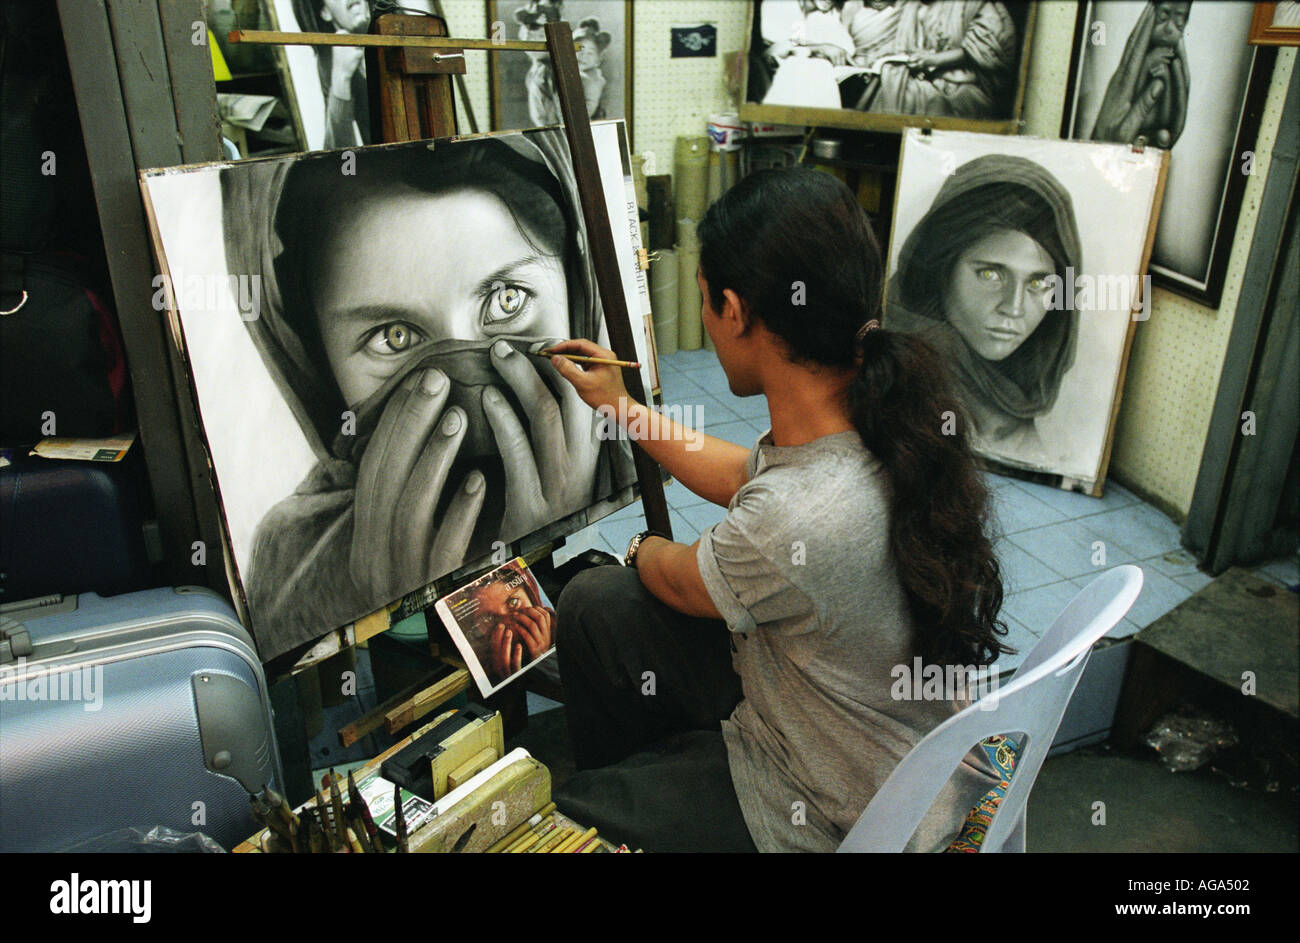 Drawing a picture taken from National Geographic Magazine at the Night Market in Chiang Mai Thailand - Stock Image